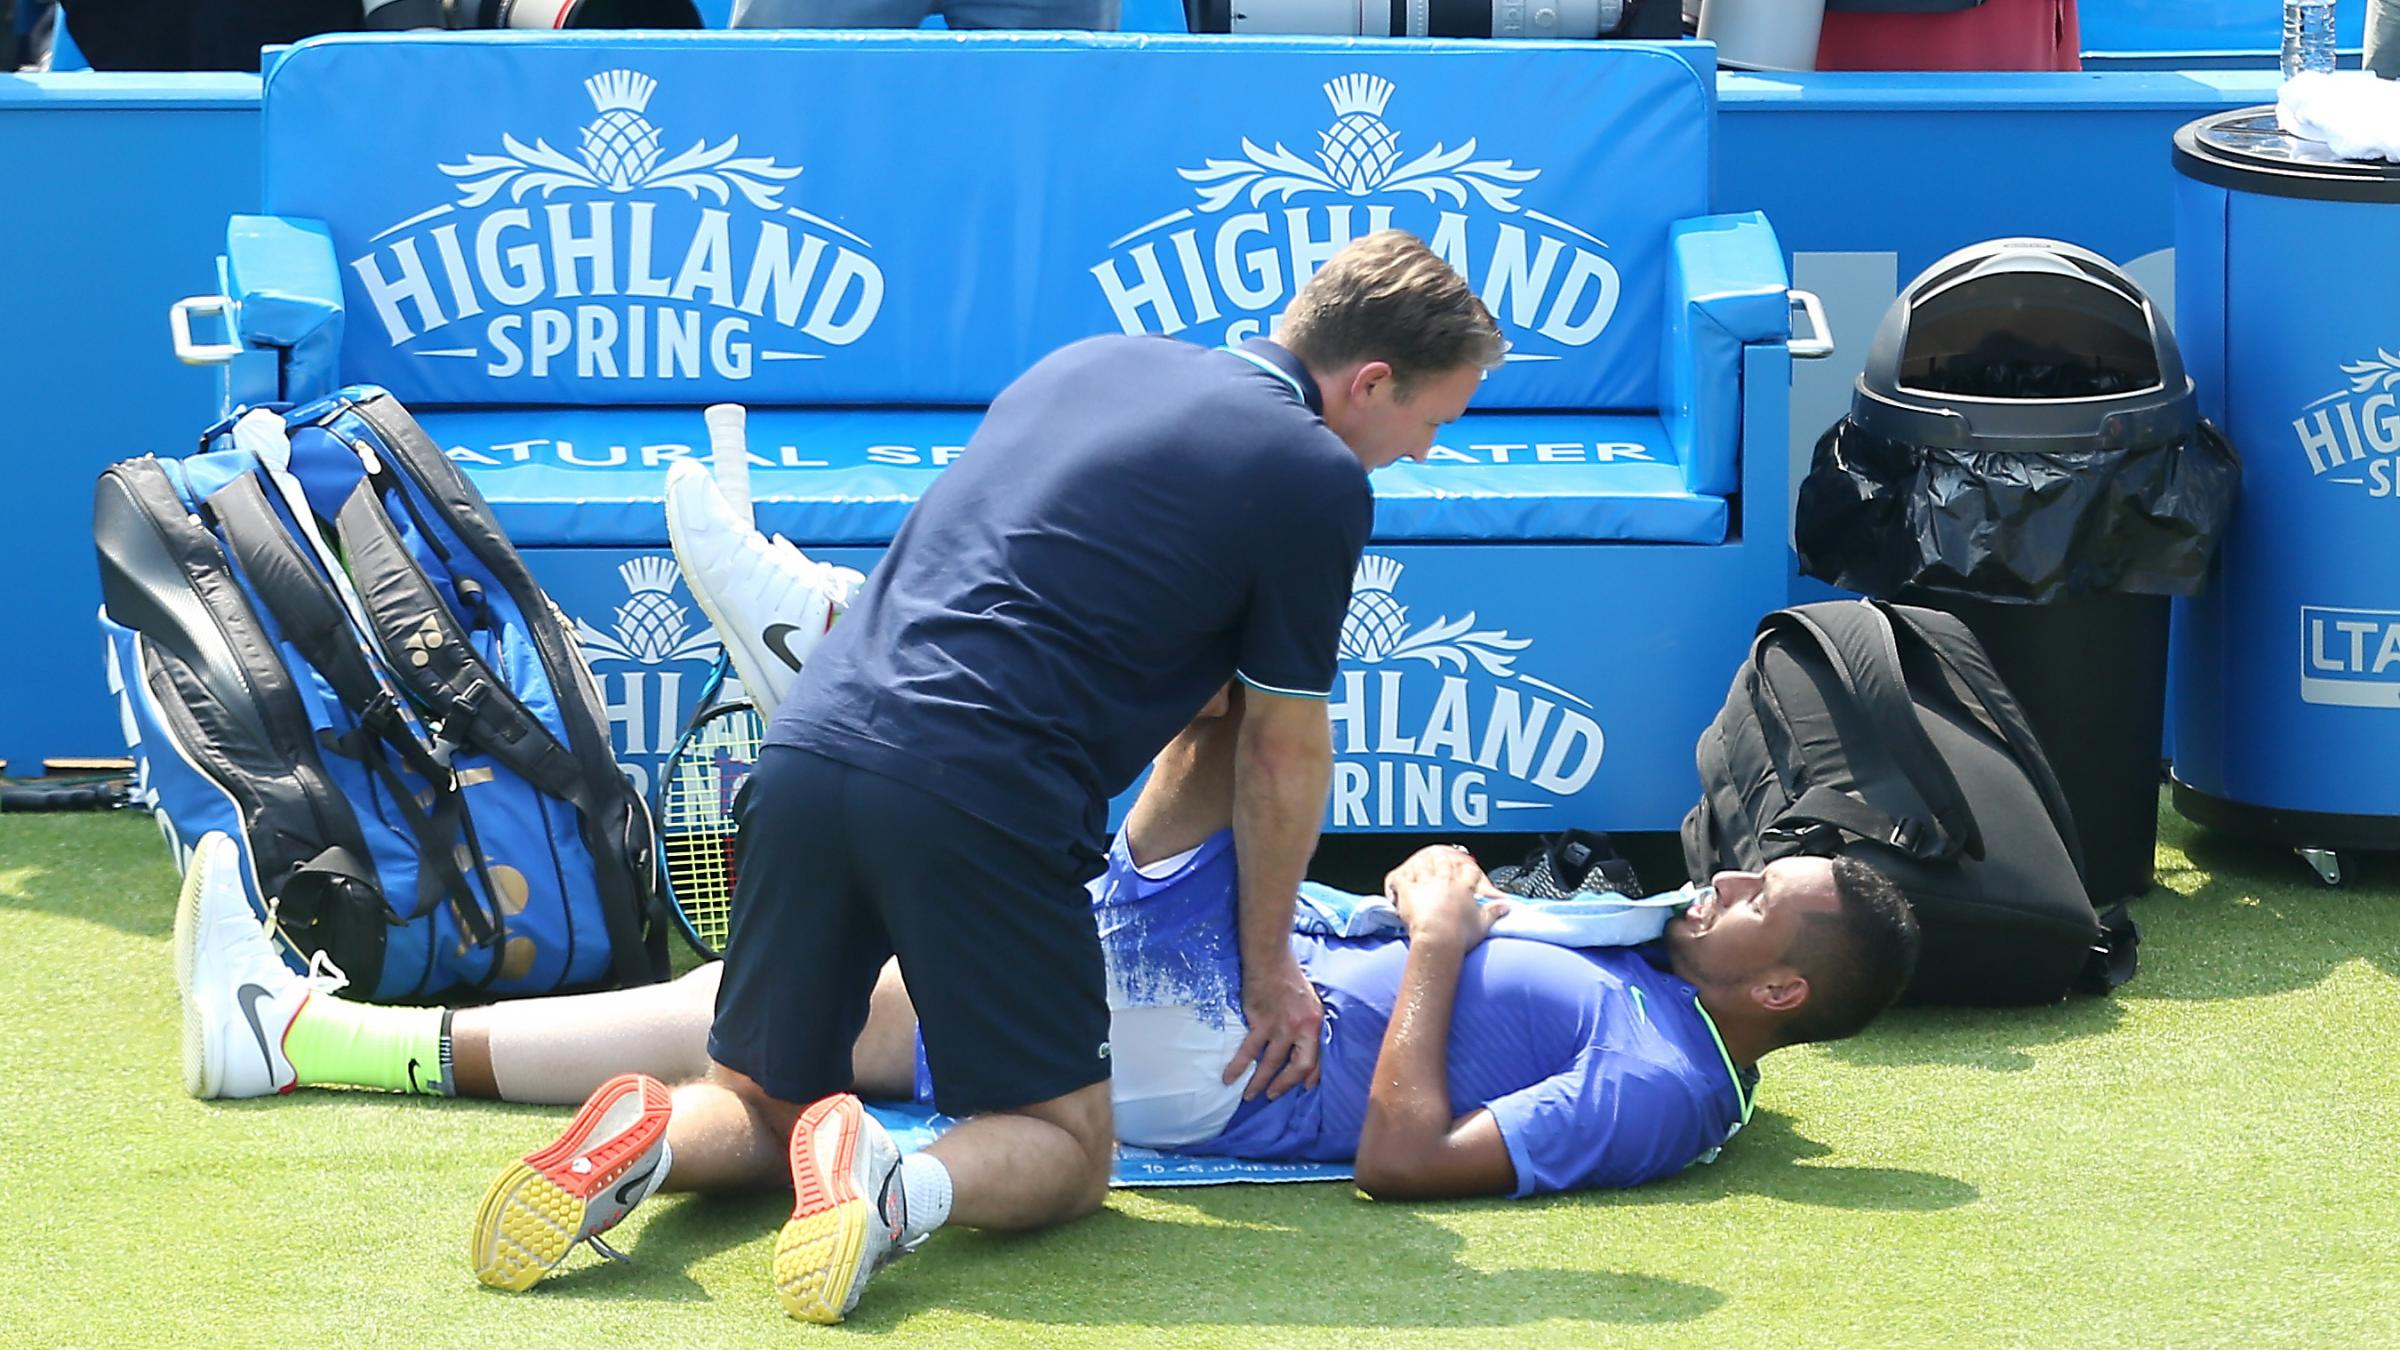 Injured Nick Kyrgios limps out of Queen's